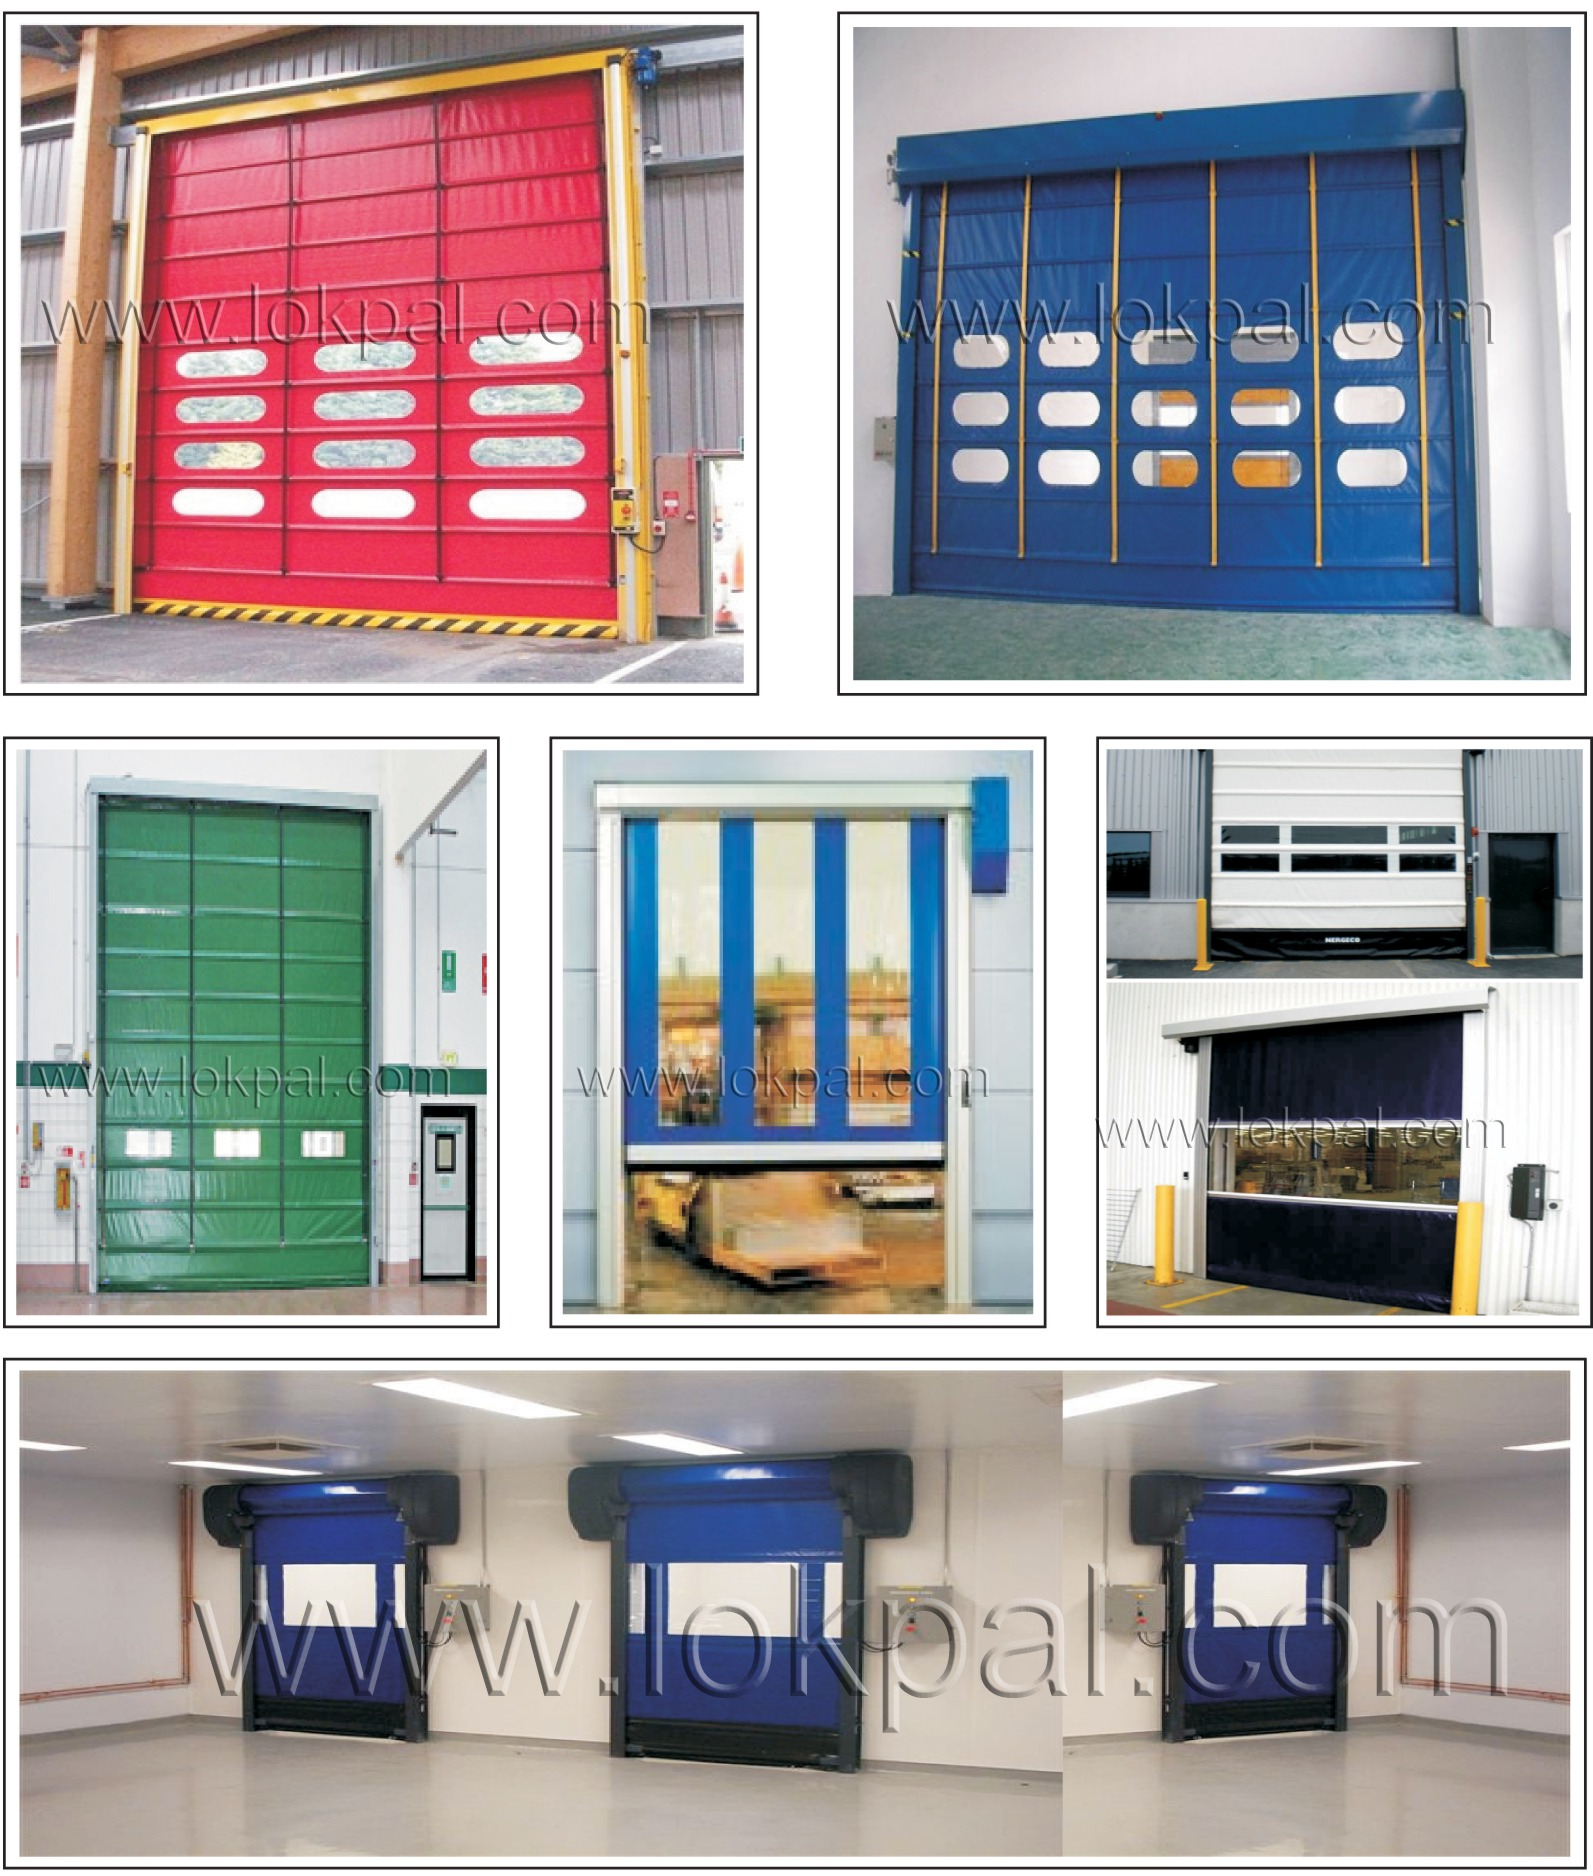 sectional door by rolltech overhead industrial shareboot pages sites theme baab com doors garage topsharepoint frsd